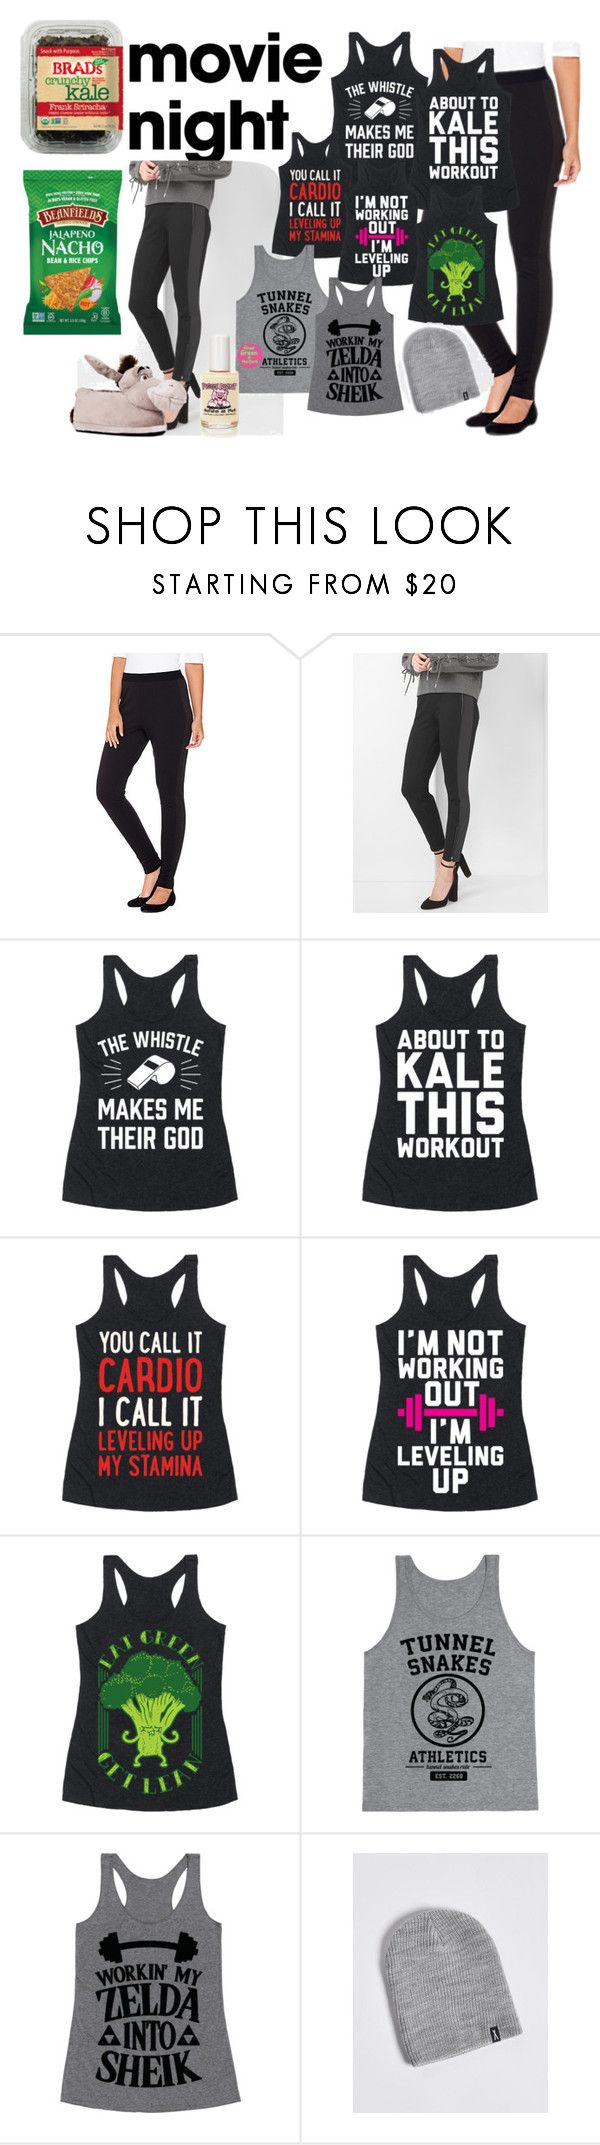 """""""A Leg Up"""" by mik-zee ❤ liked on Polyvore featuring Lisa Rinna Collection, DreamWorks, Kale and Piggy Paint"""